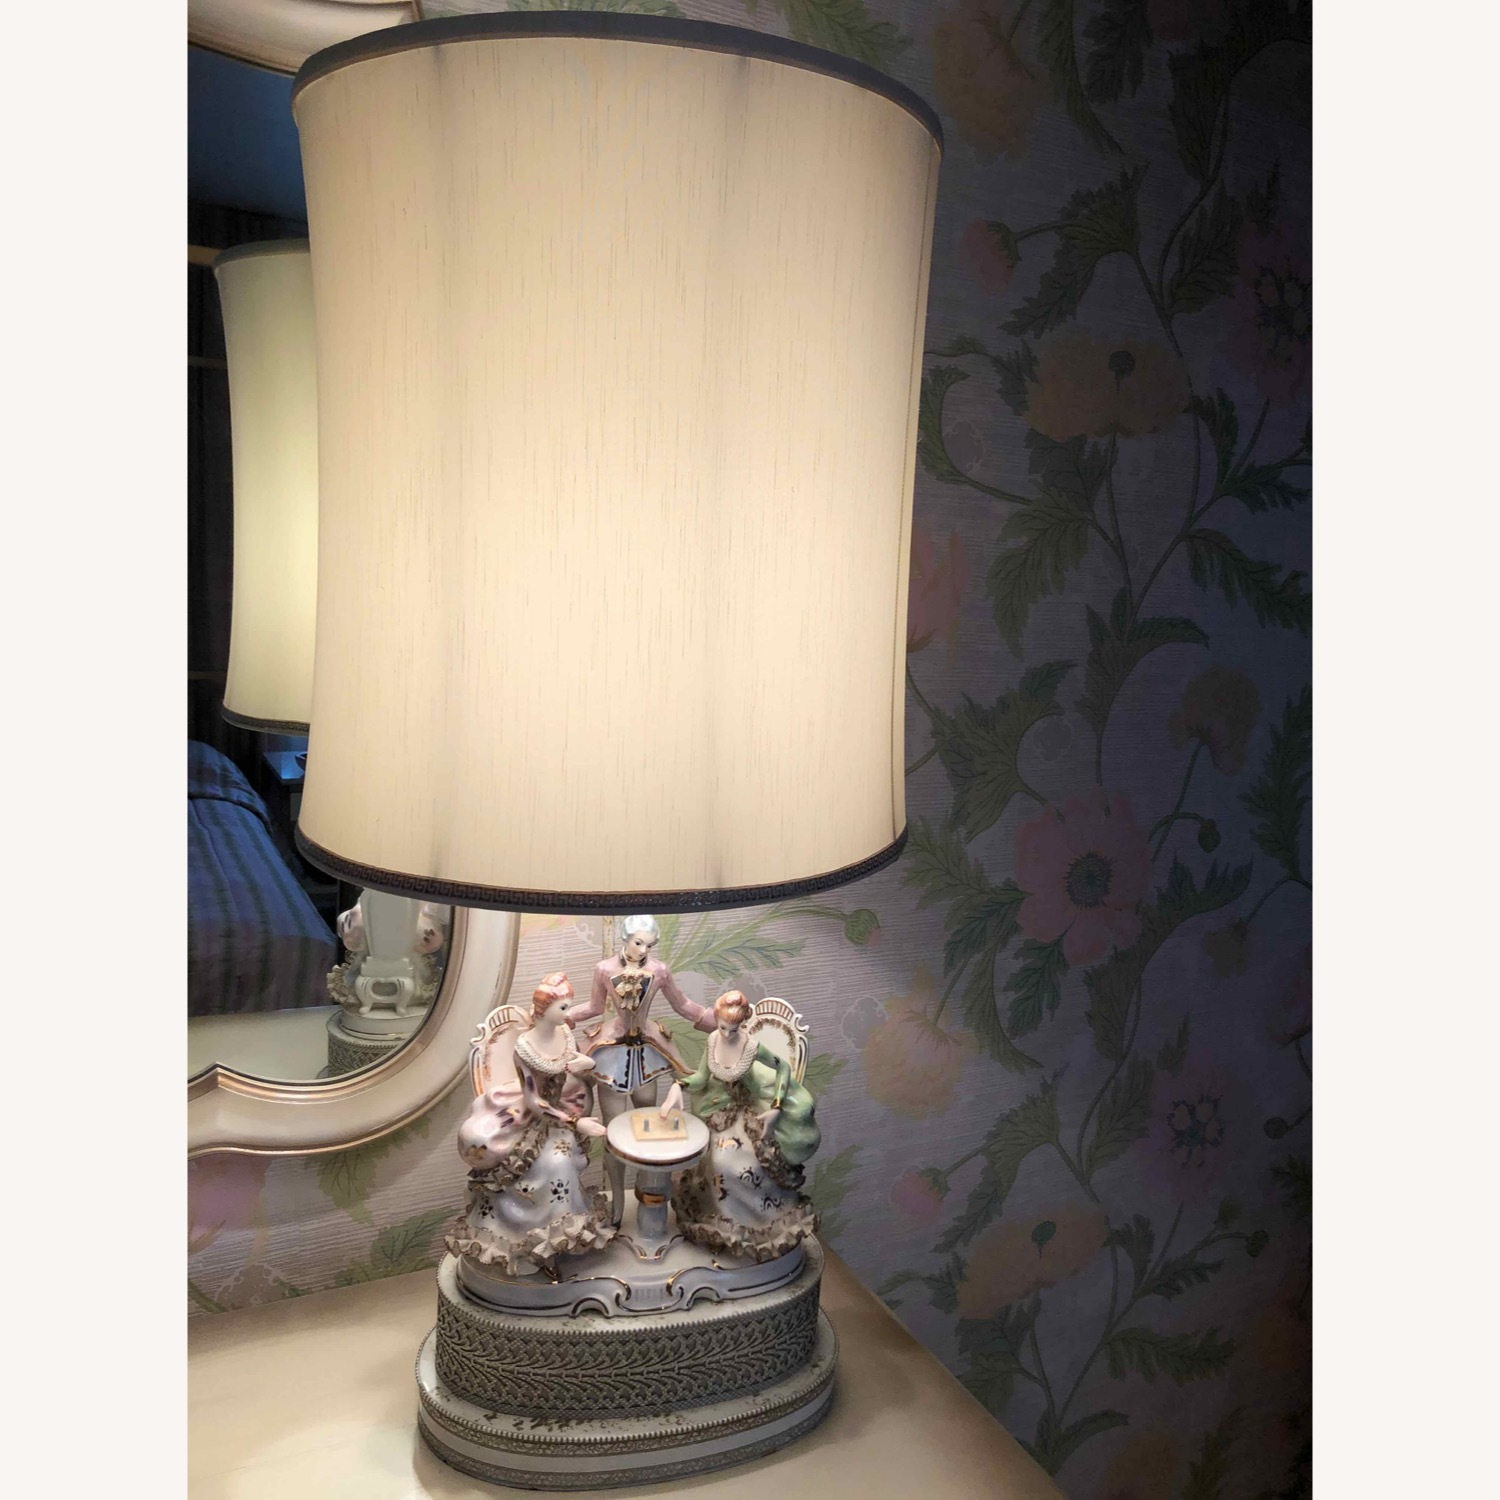 Porcelain Lamp with Lighted Base - image-1